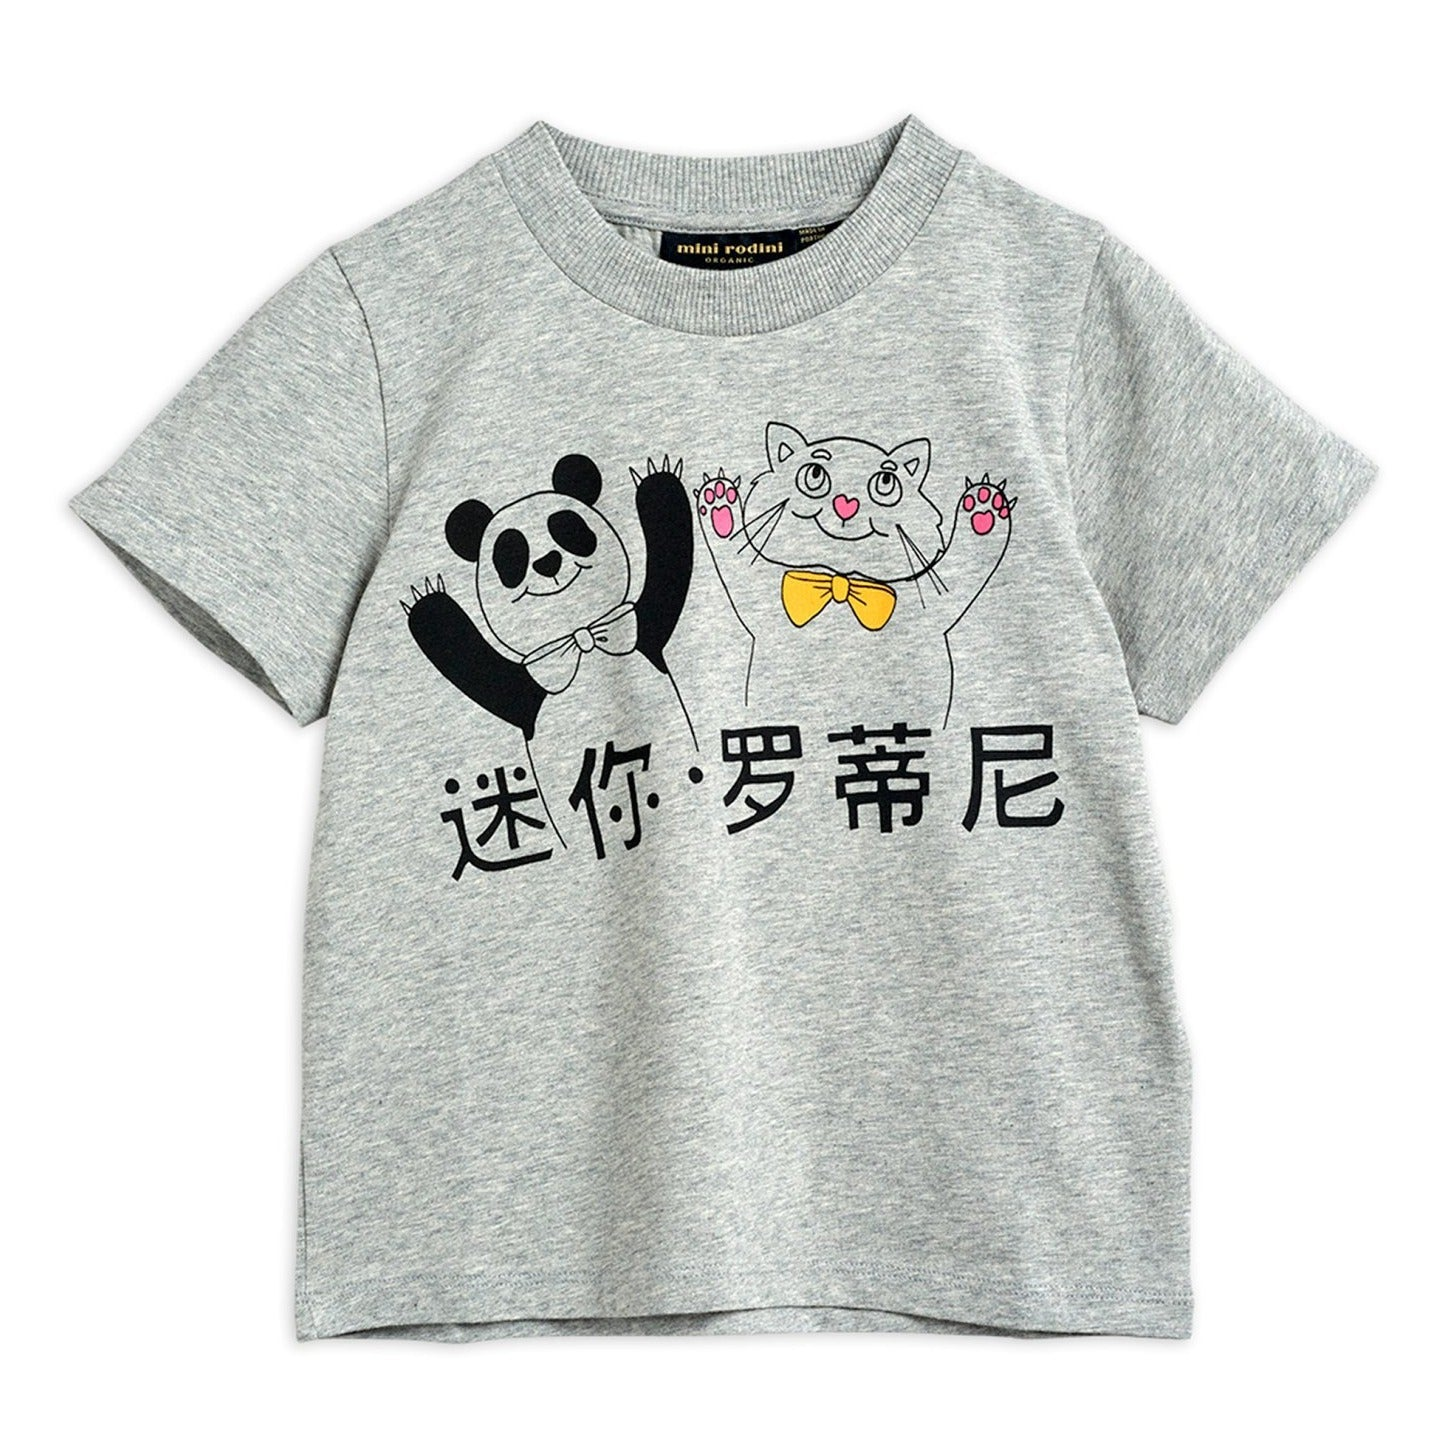 Mini Rodini cat & panda sp ss tee, grey melange